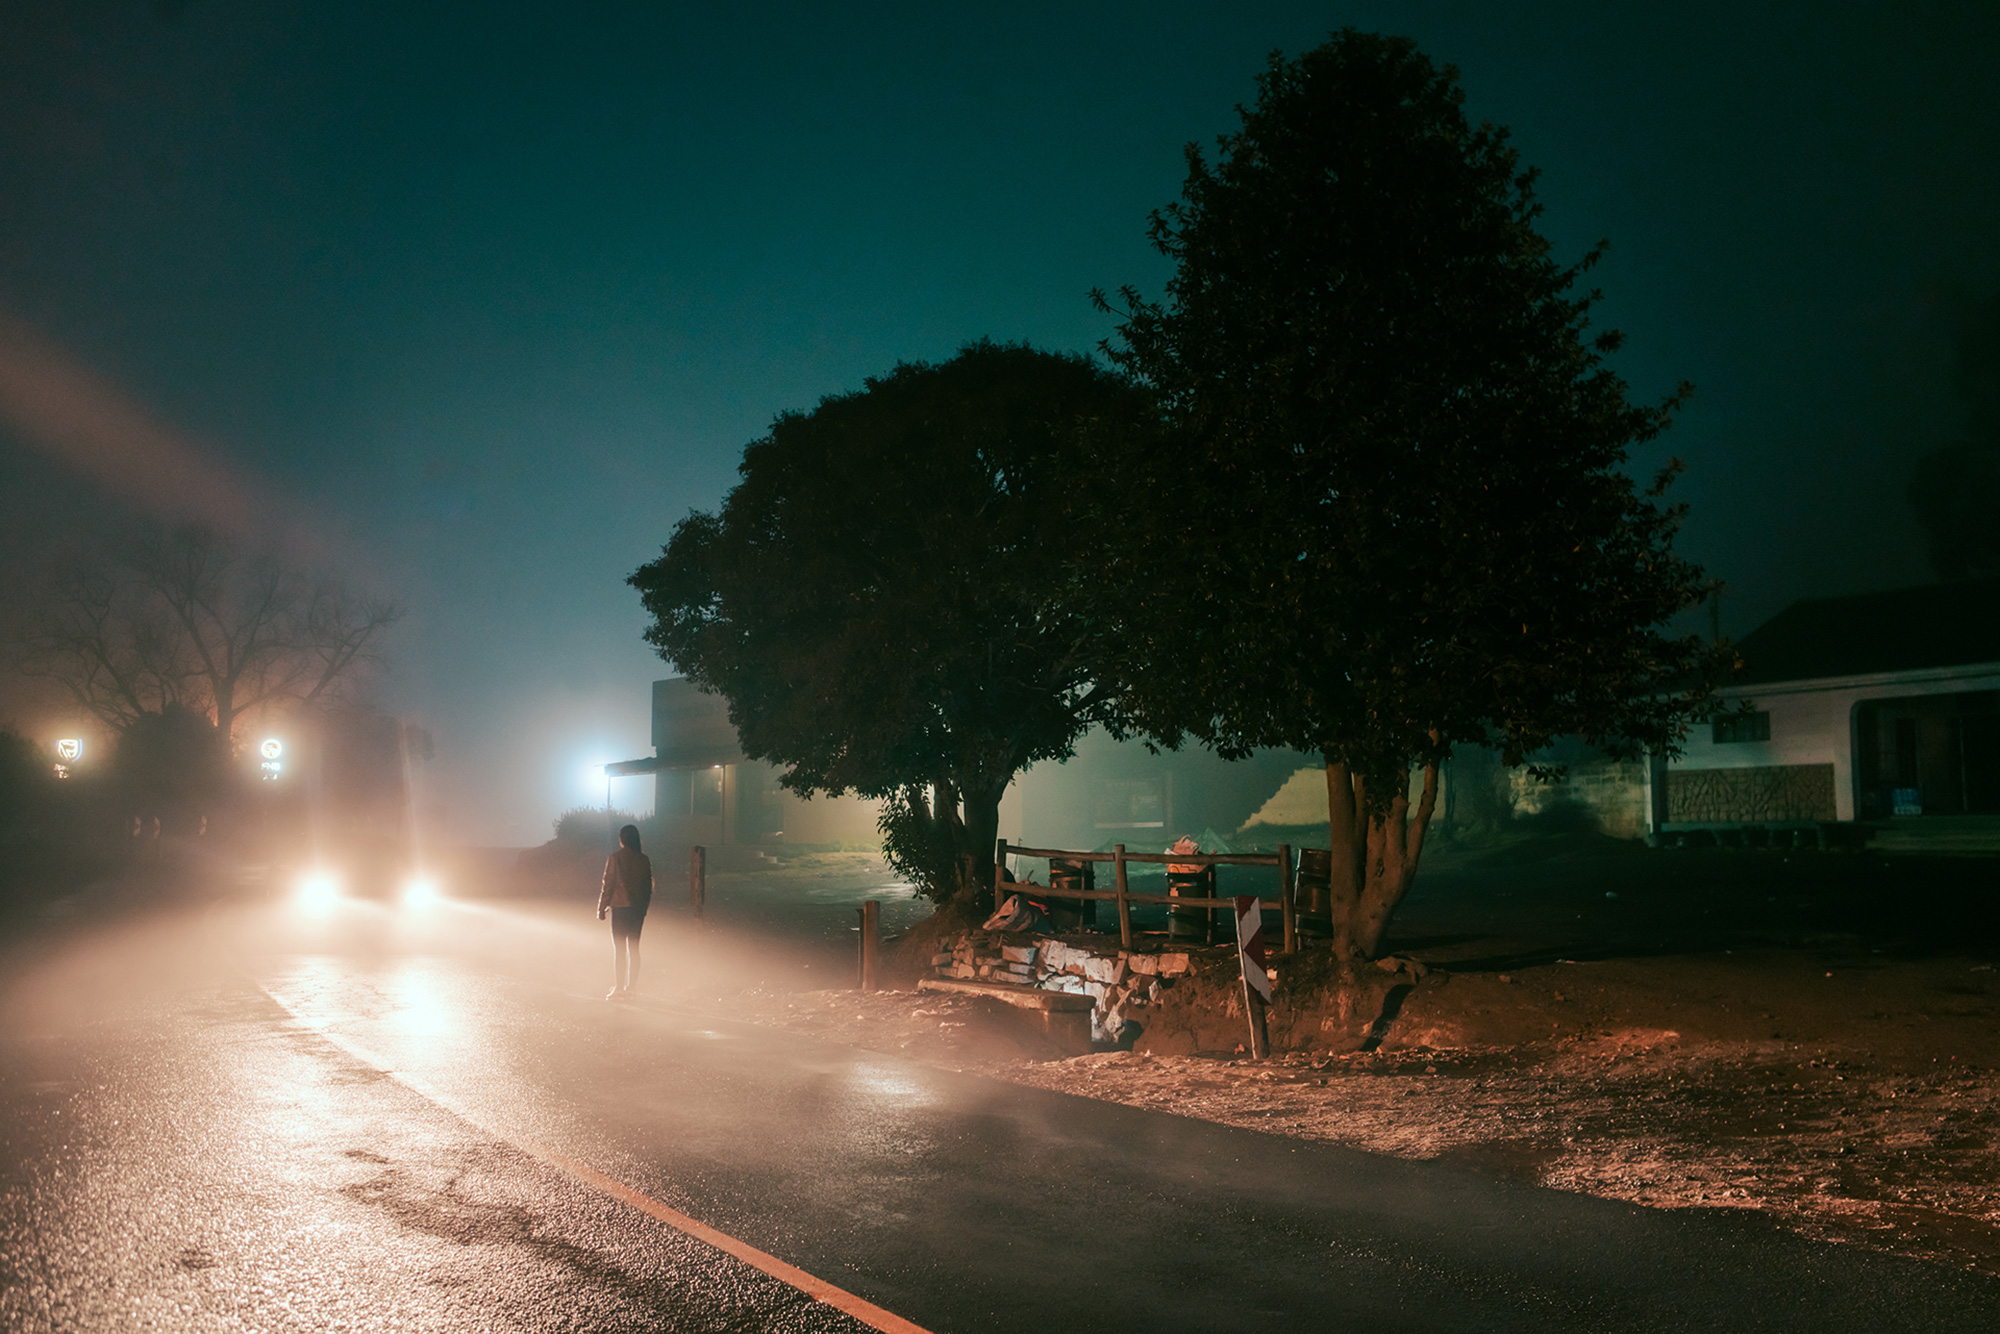 Elsa Bleda - Nottingham Road - standing alone on road